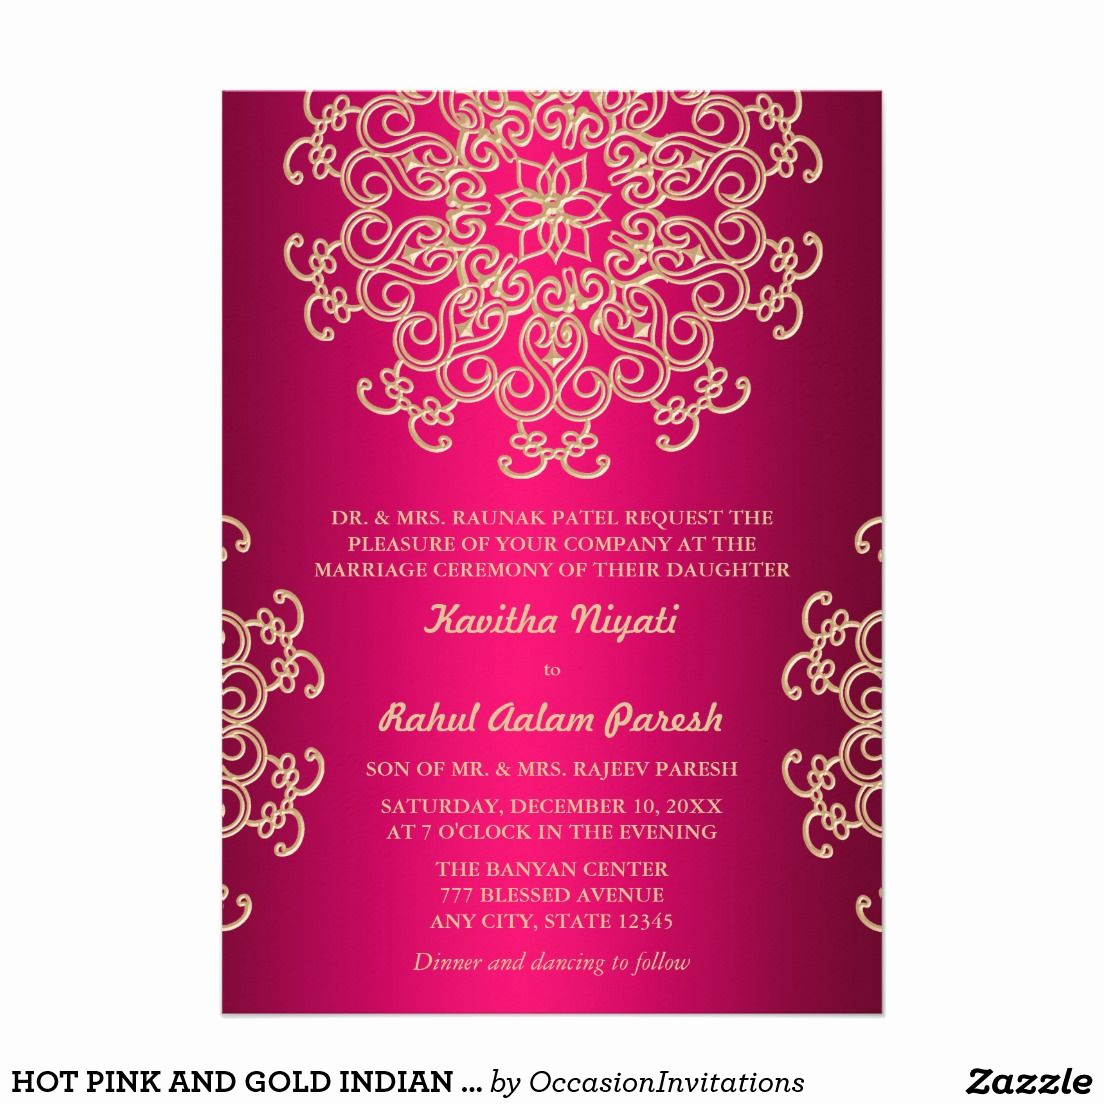 Indian Wedding Reception Invitation Wording Lovely Hot Pink and Gold Indian Style Wedding Invitation